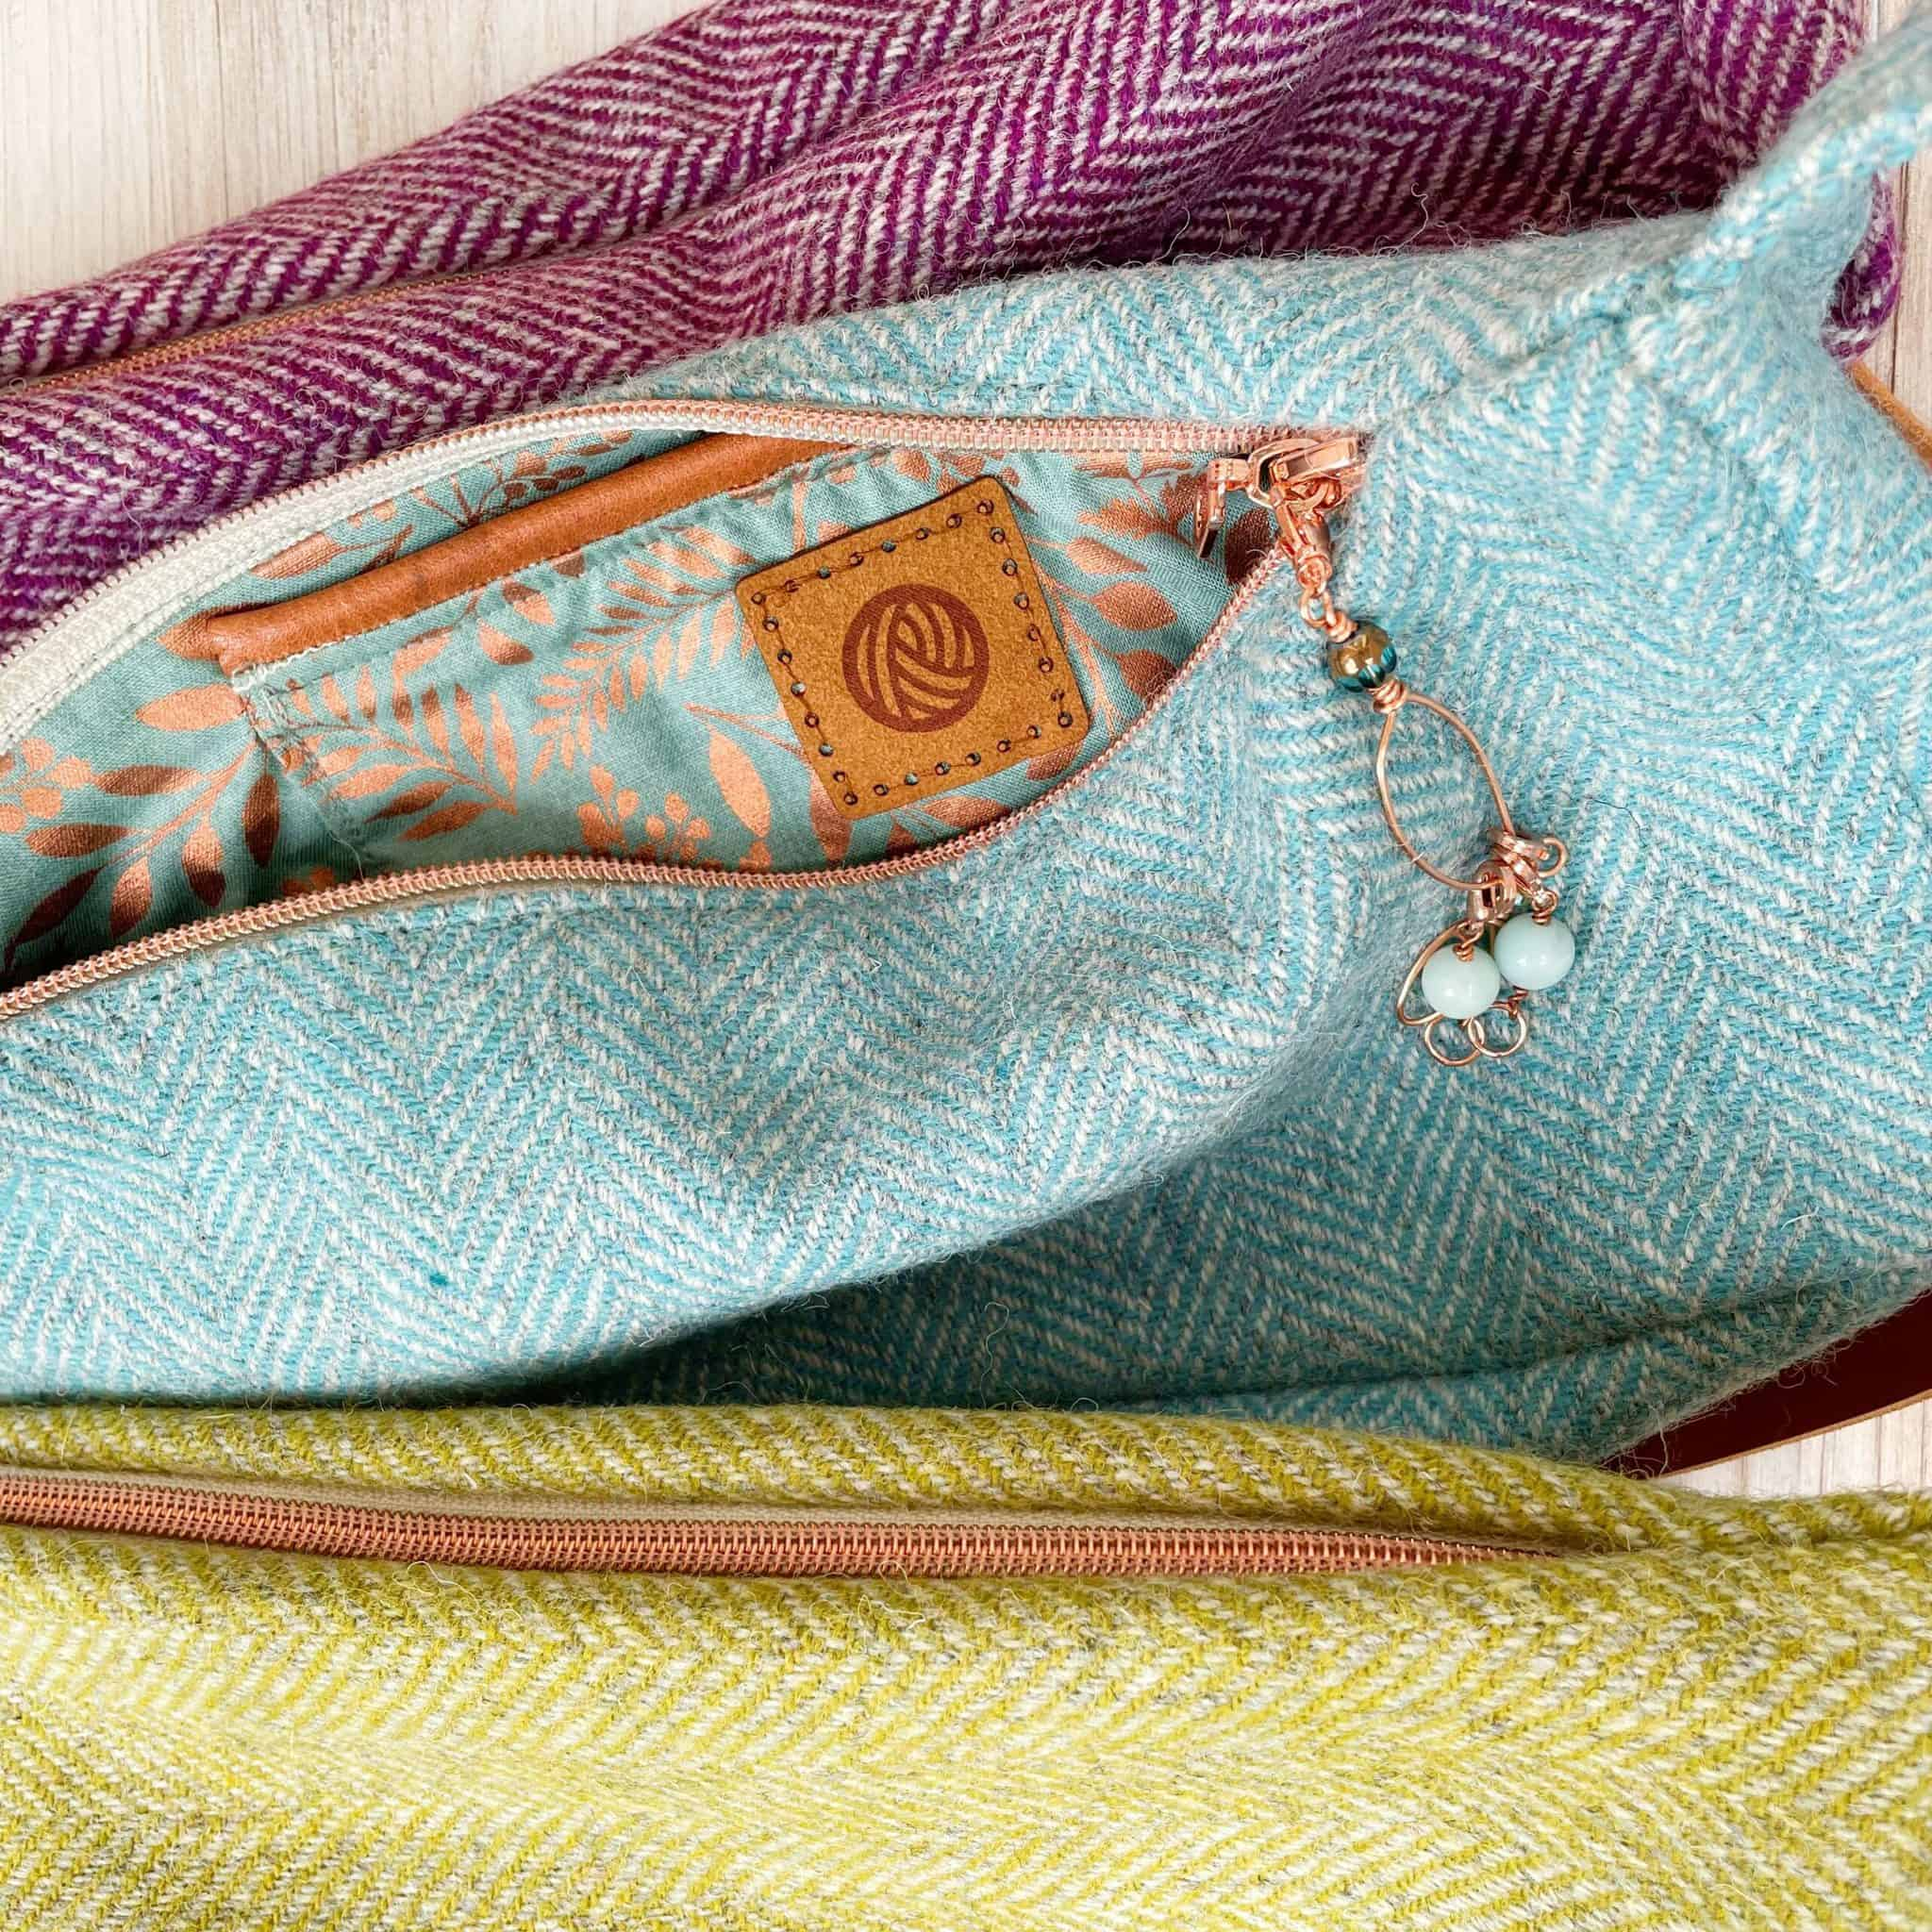 Purple, teal and green tweed bags with rose gold zippers.